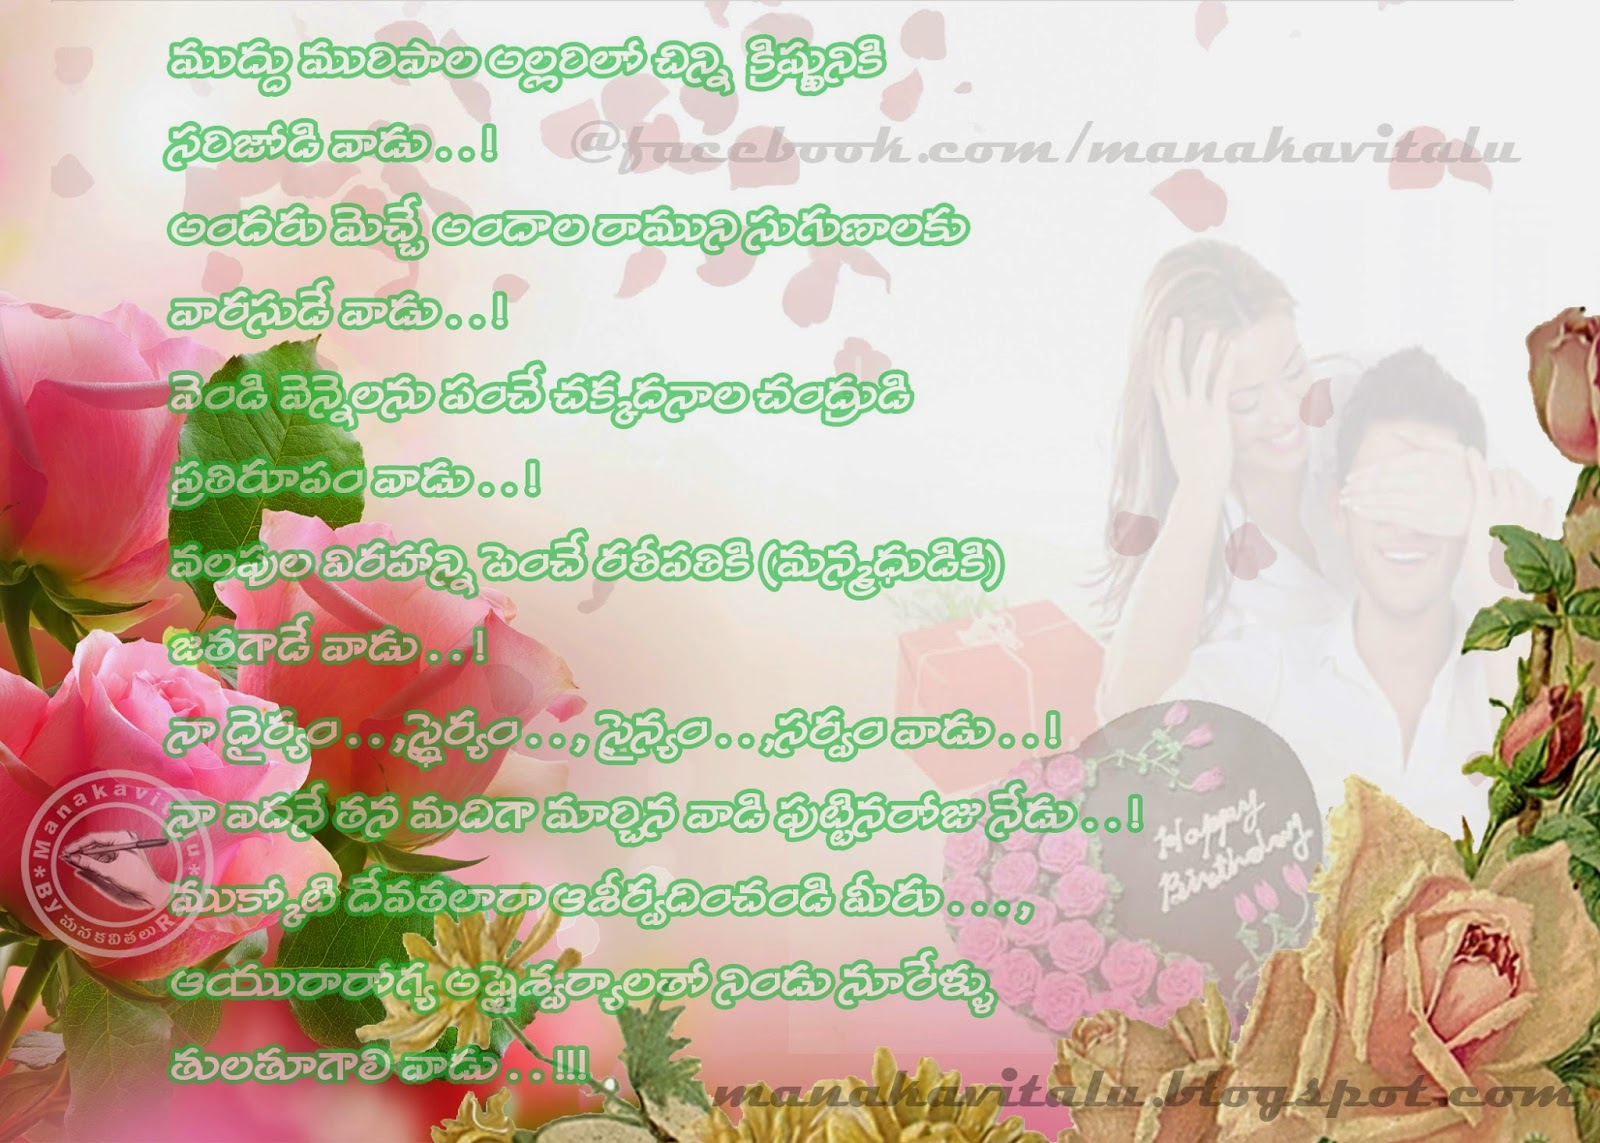 birthday wishes in telugu kavitalu on images to download save wallpaper